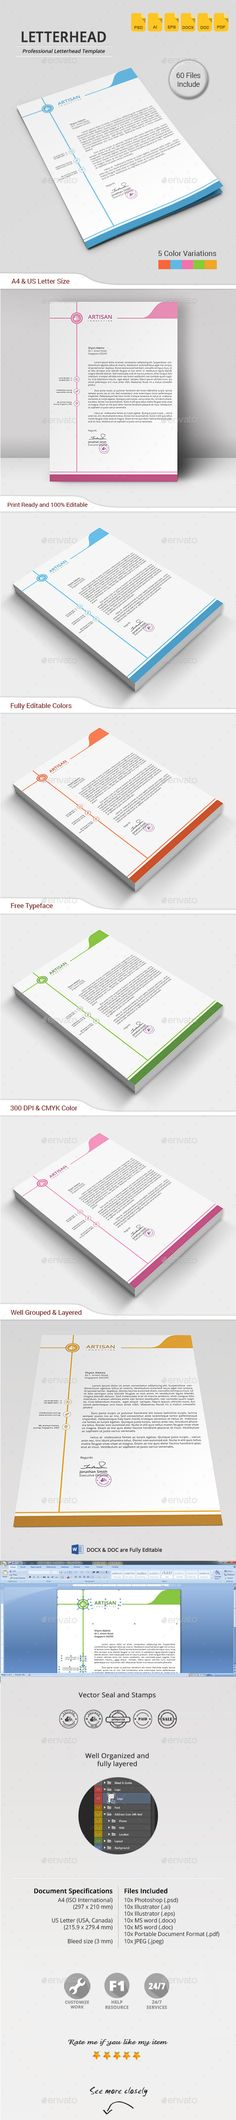 Letterhead Letterhead, Stationery printing and Letterhead template - corporate letterhead template